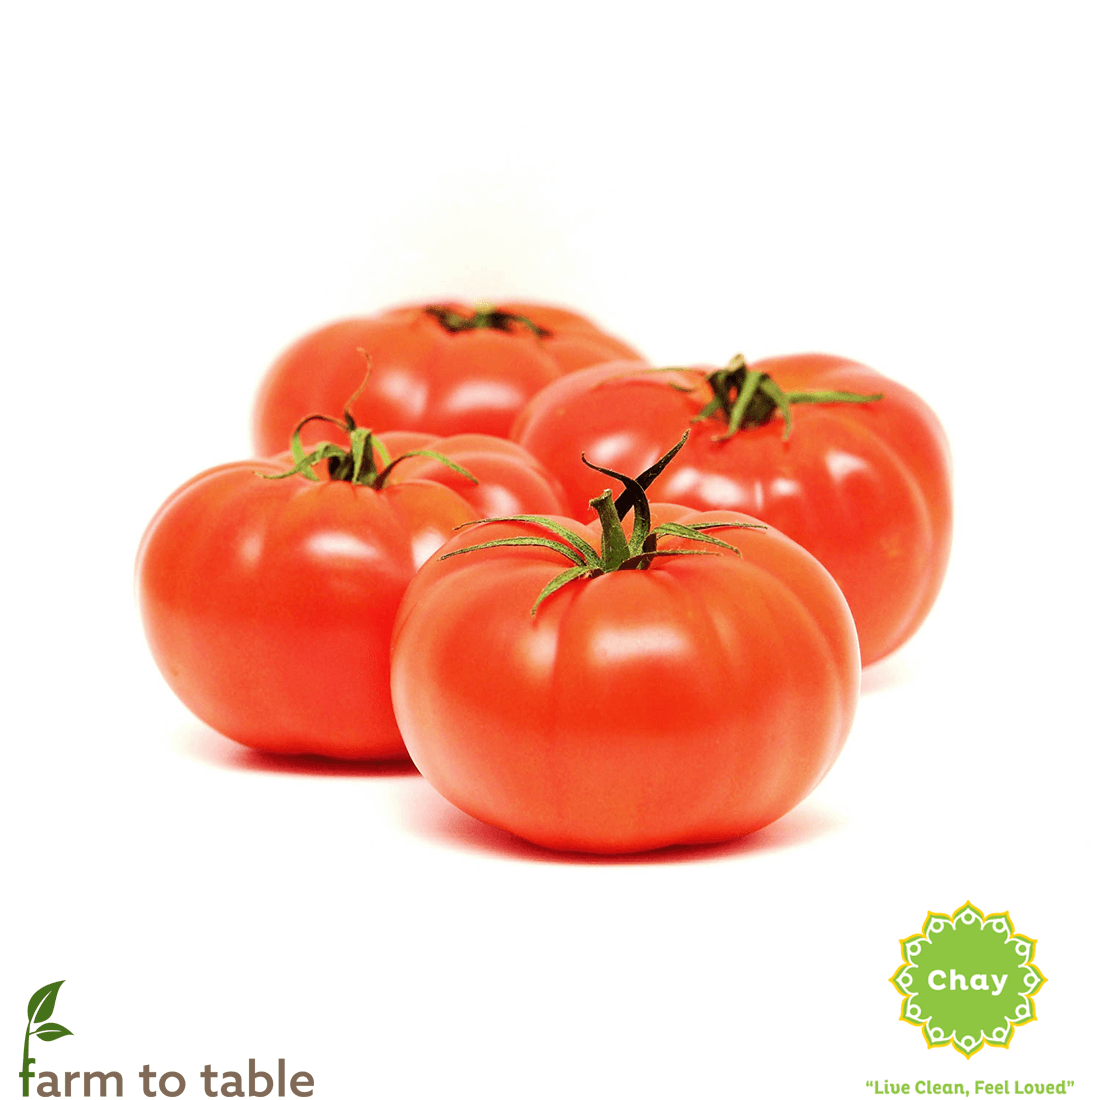 Beef tomato 0,5 - 0,6 kg